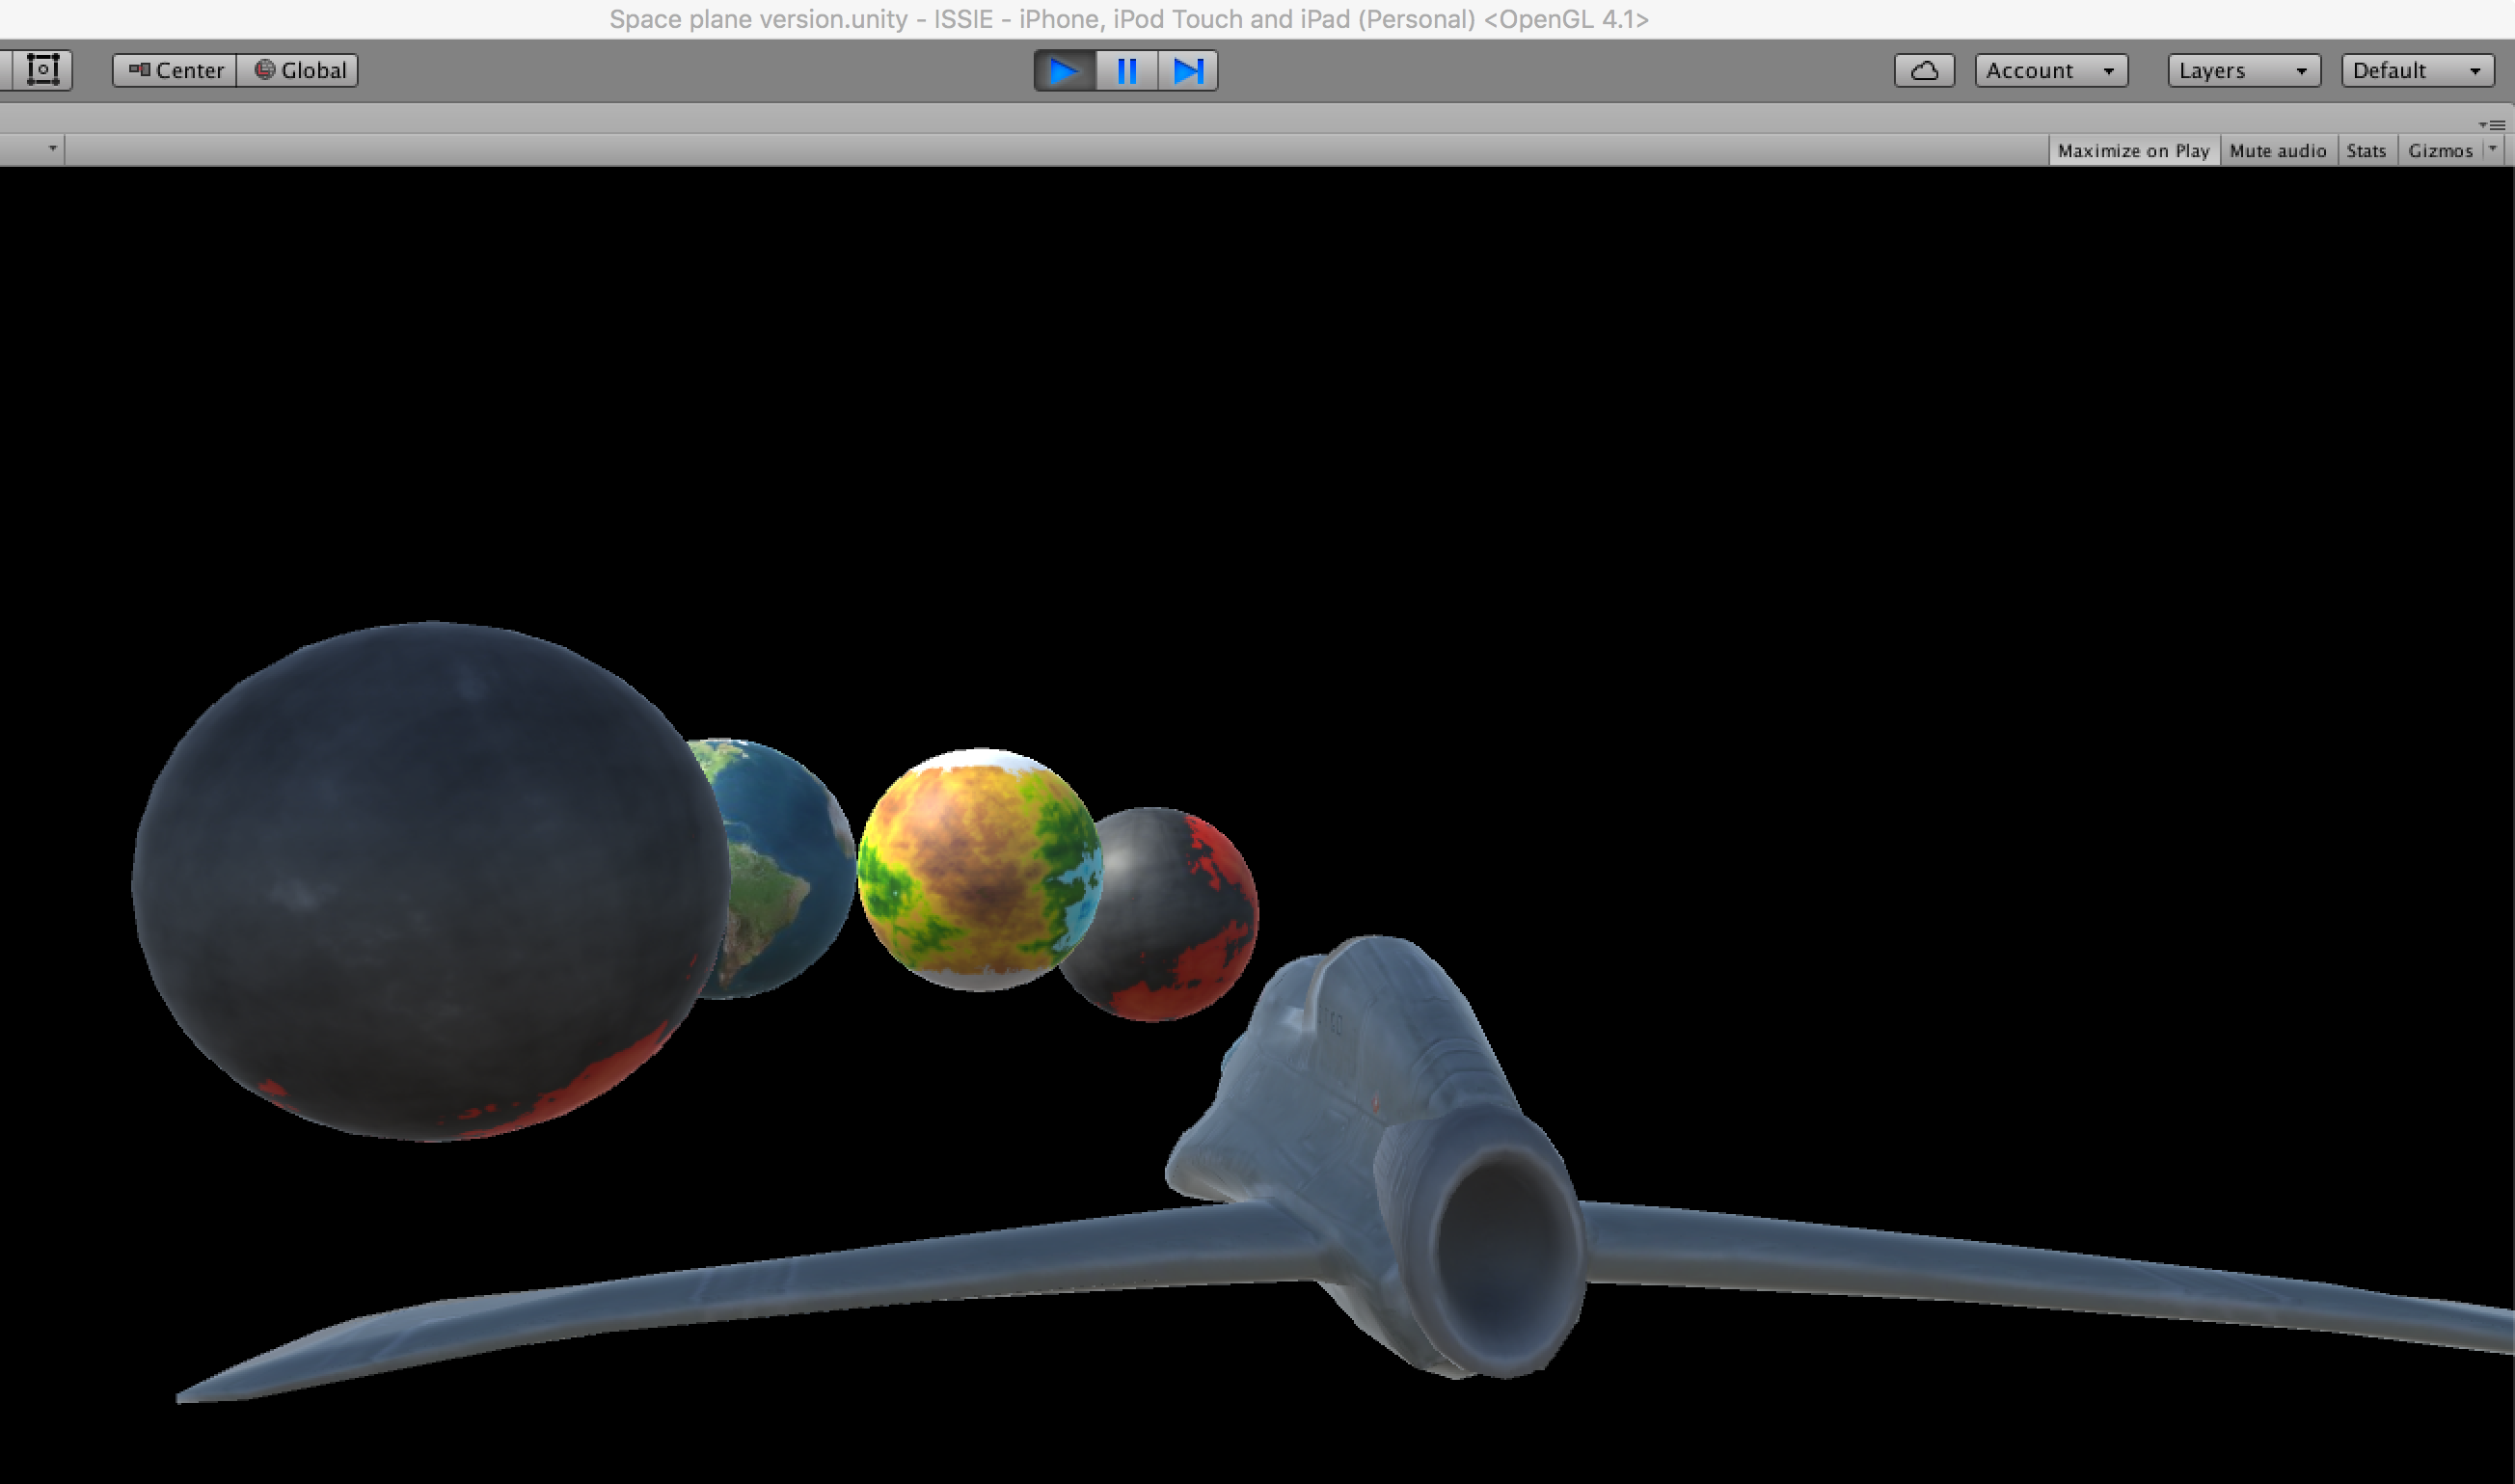 Some exoplanets created for the game